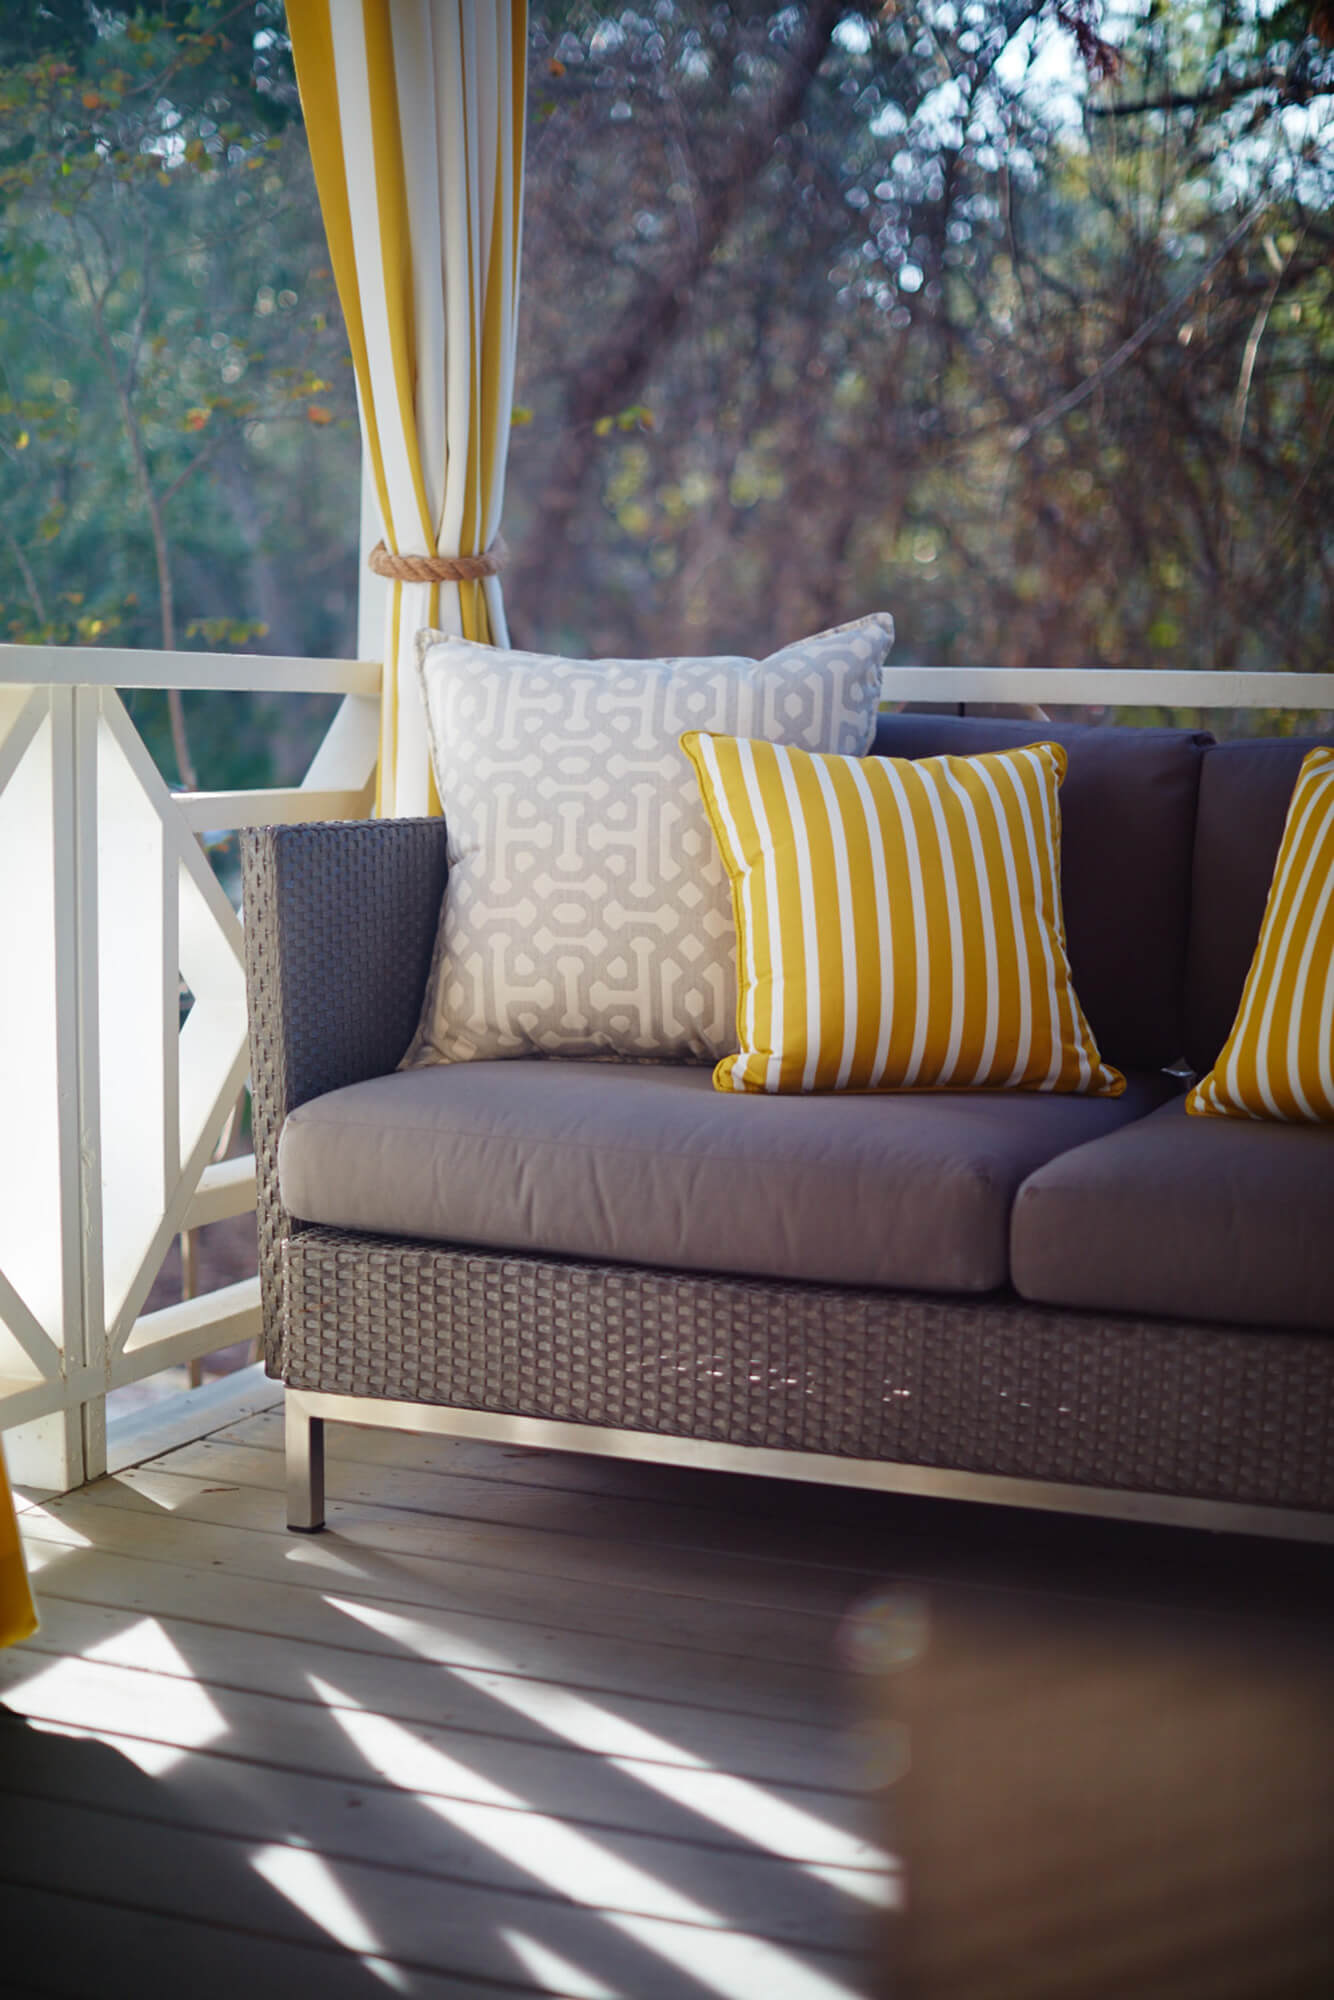 A patio with grey sofa gets a pop of color from yellow striped pillows and drapery